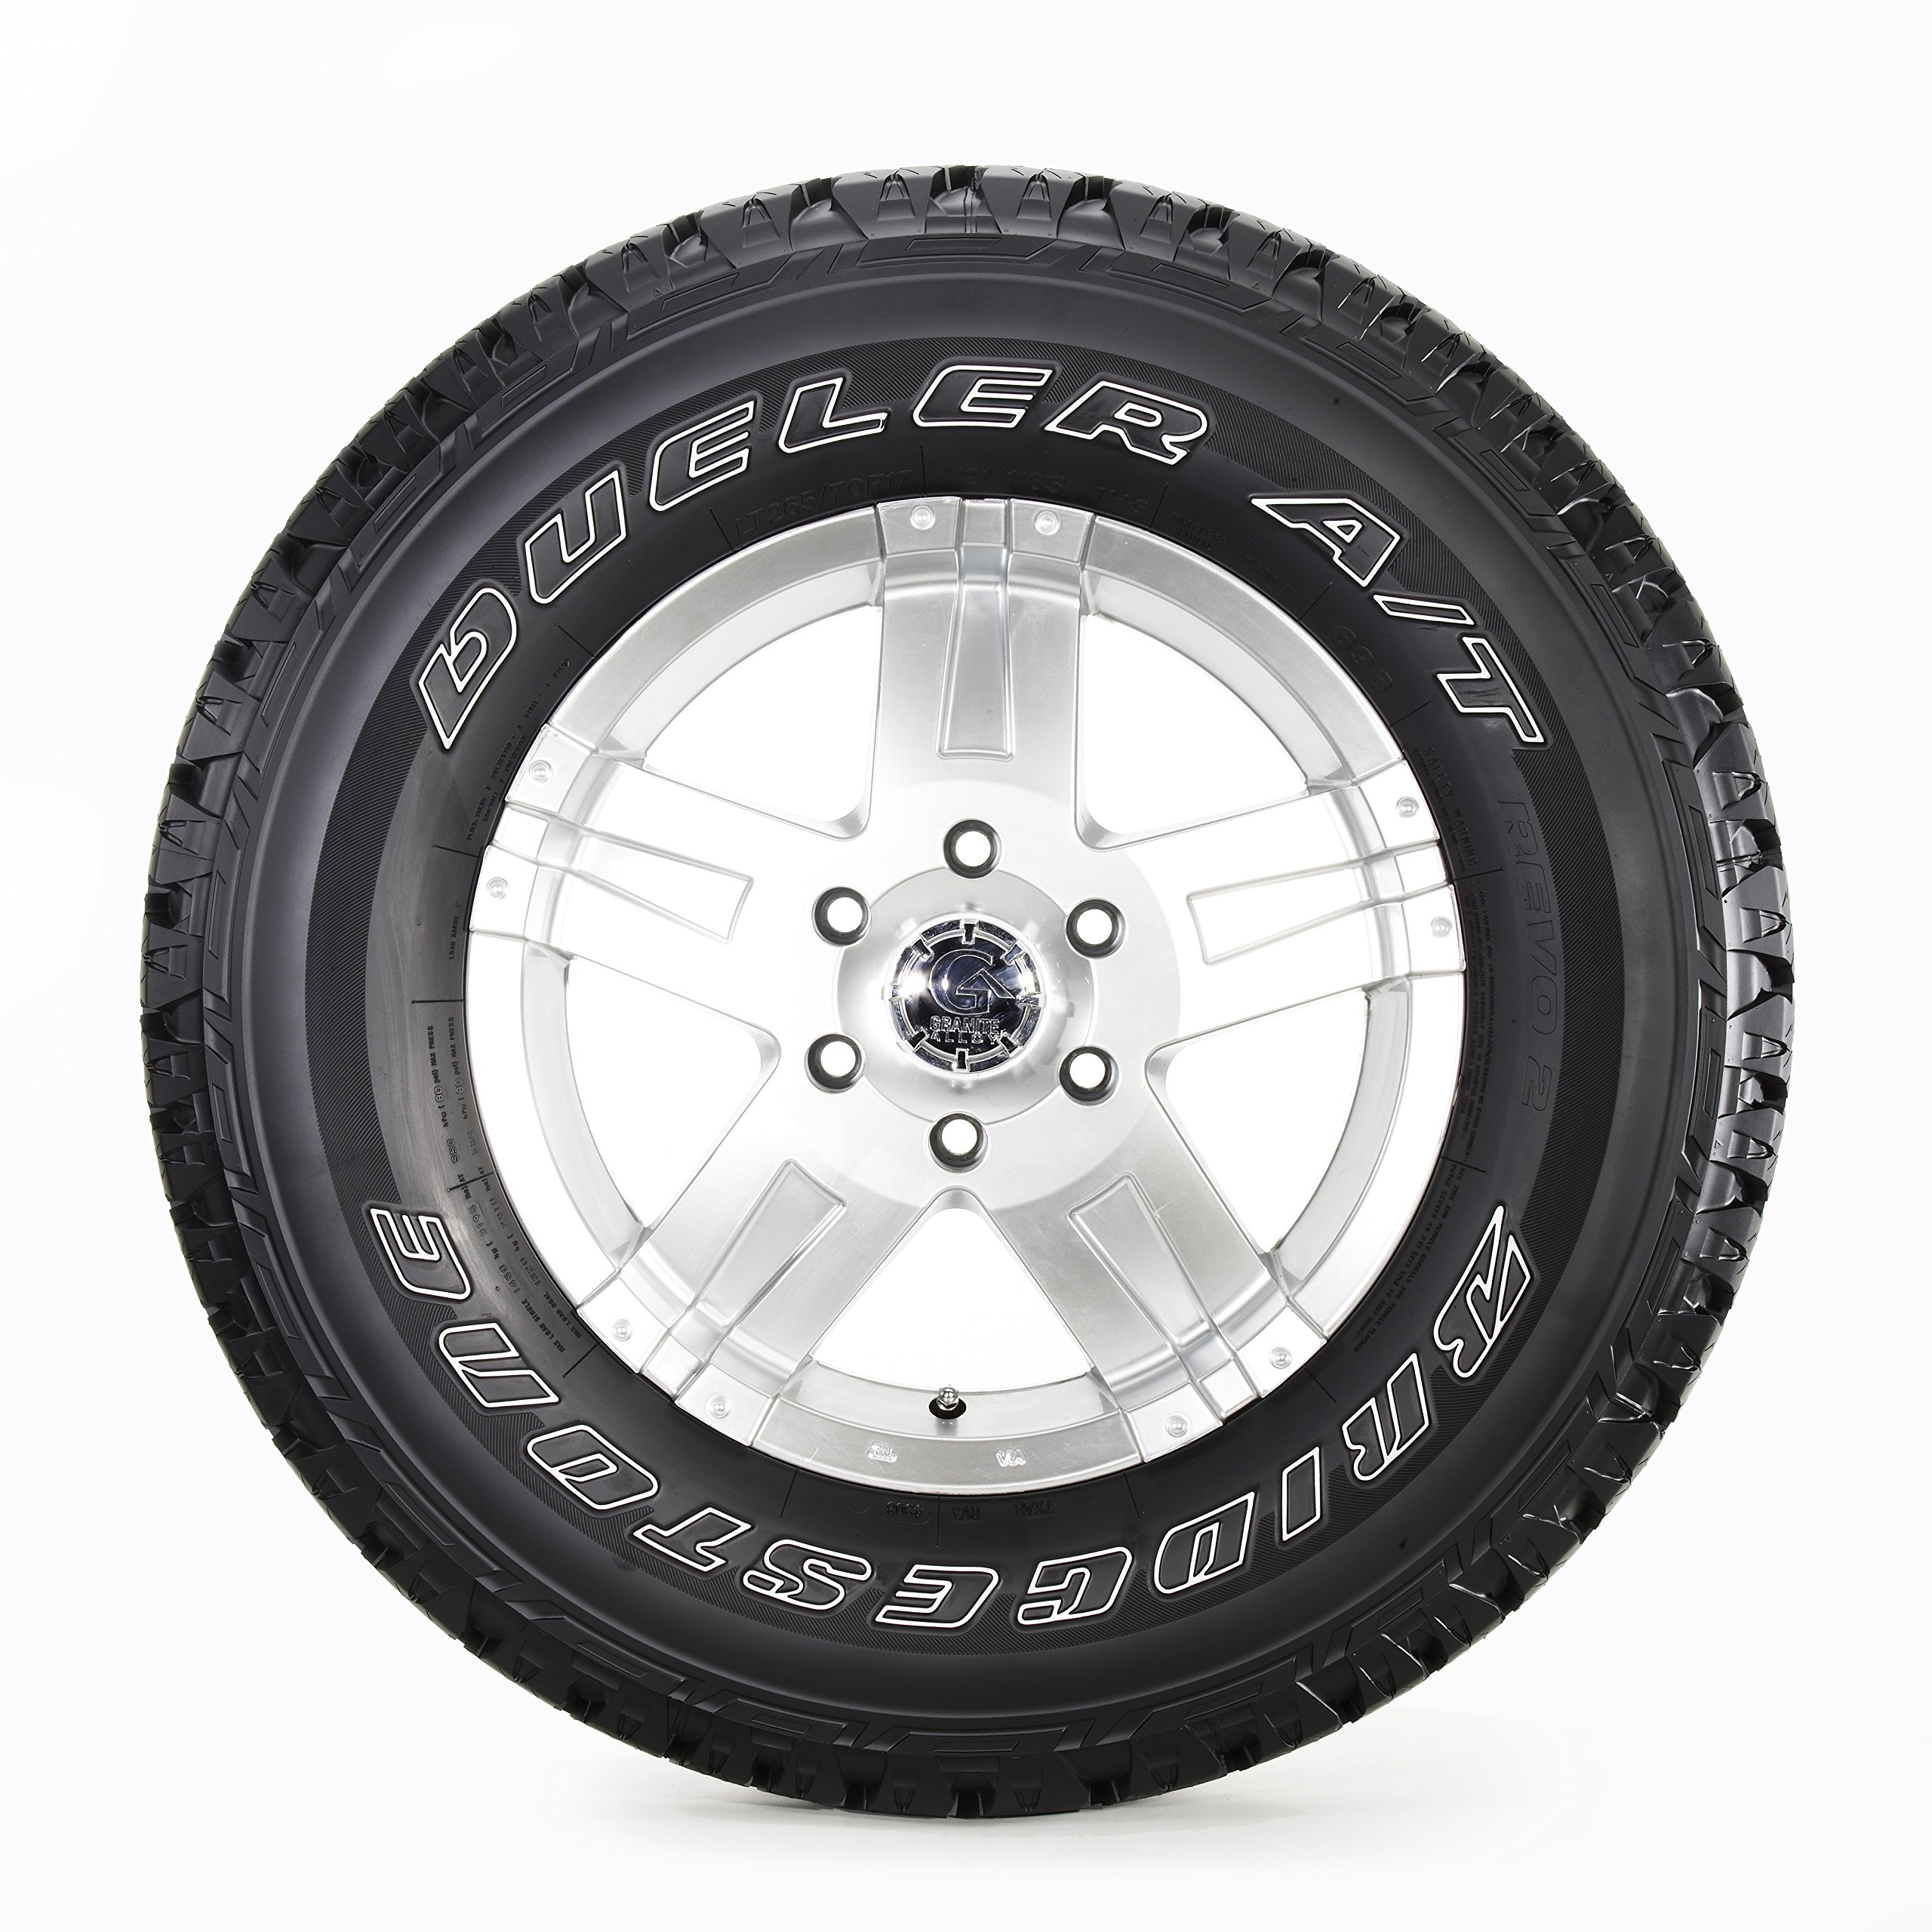 Bridgestone Dueler A/T REVO 2 All-Season Radial Tire - 275/65R18 114T by Bridgestone (Image #3)